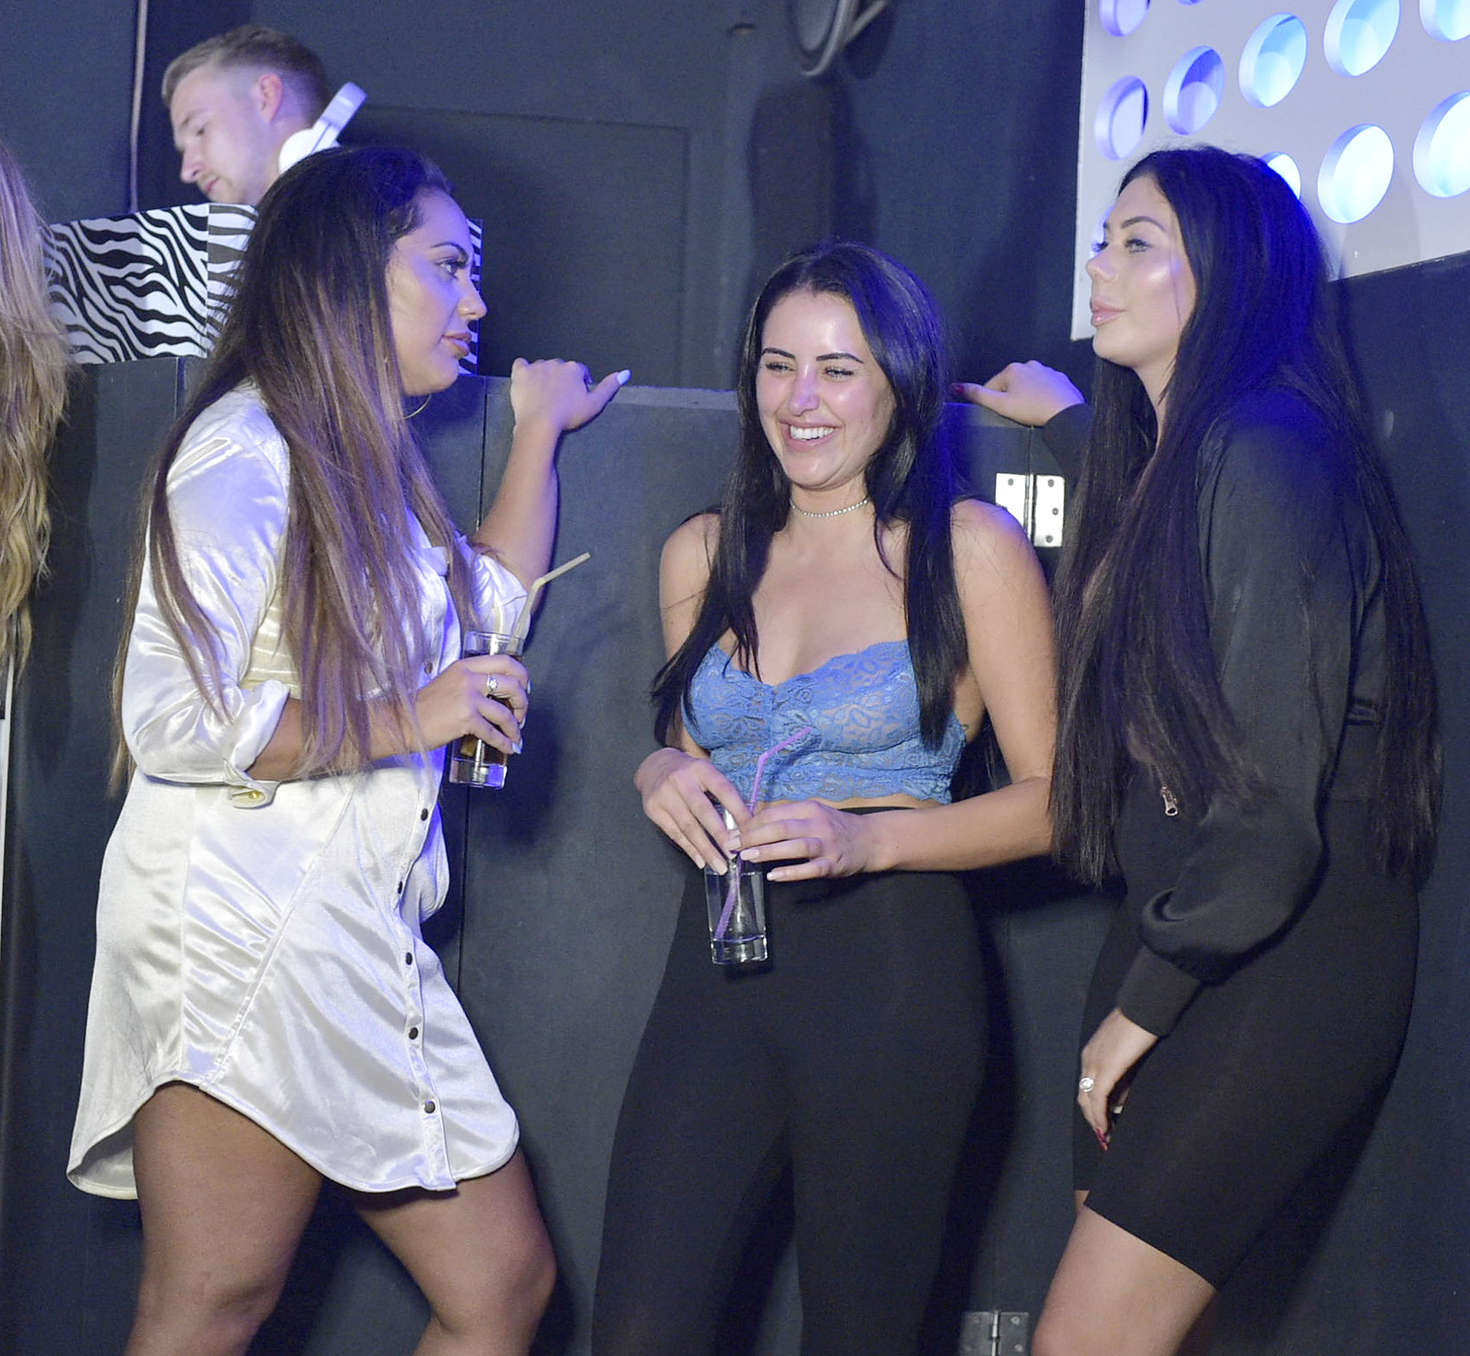 Chloe Ferry and Marnie Simpson - Filming at Sound Nightclub in Kavos